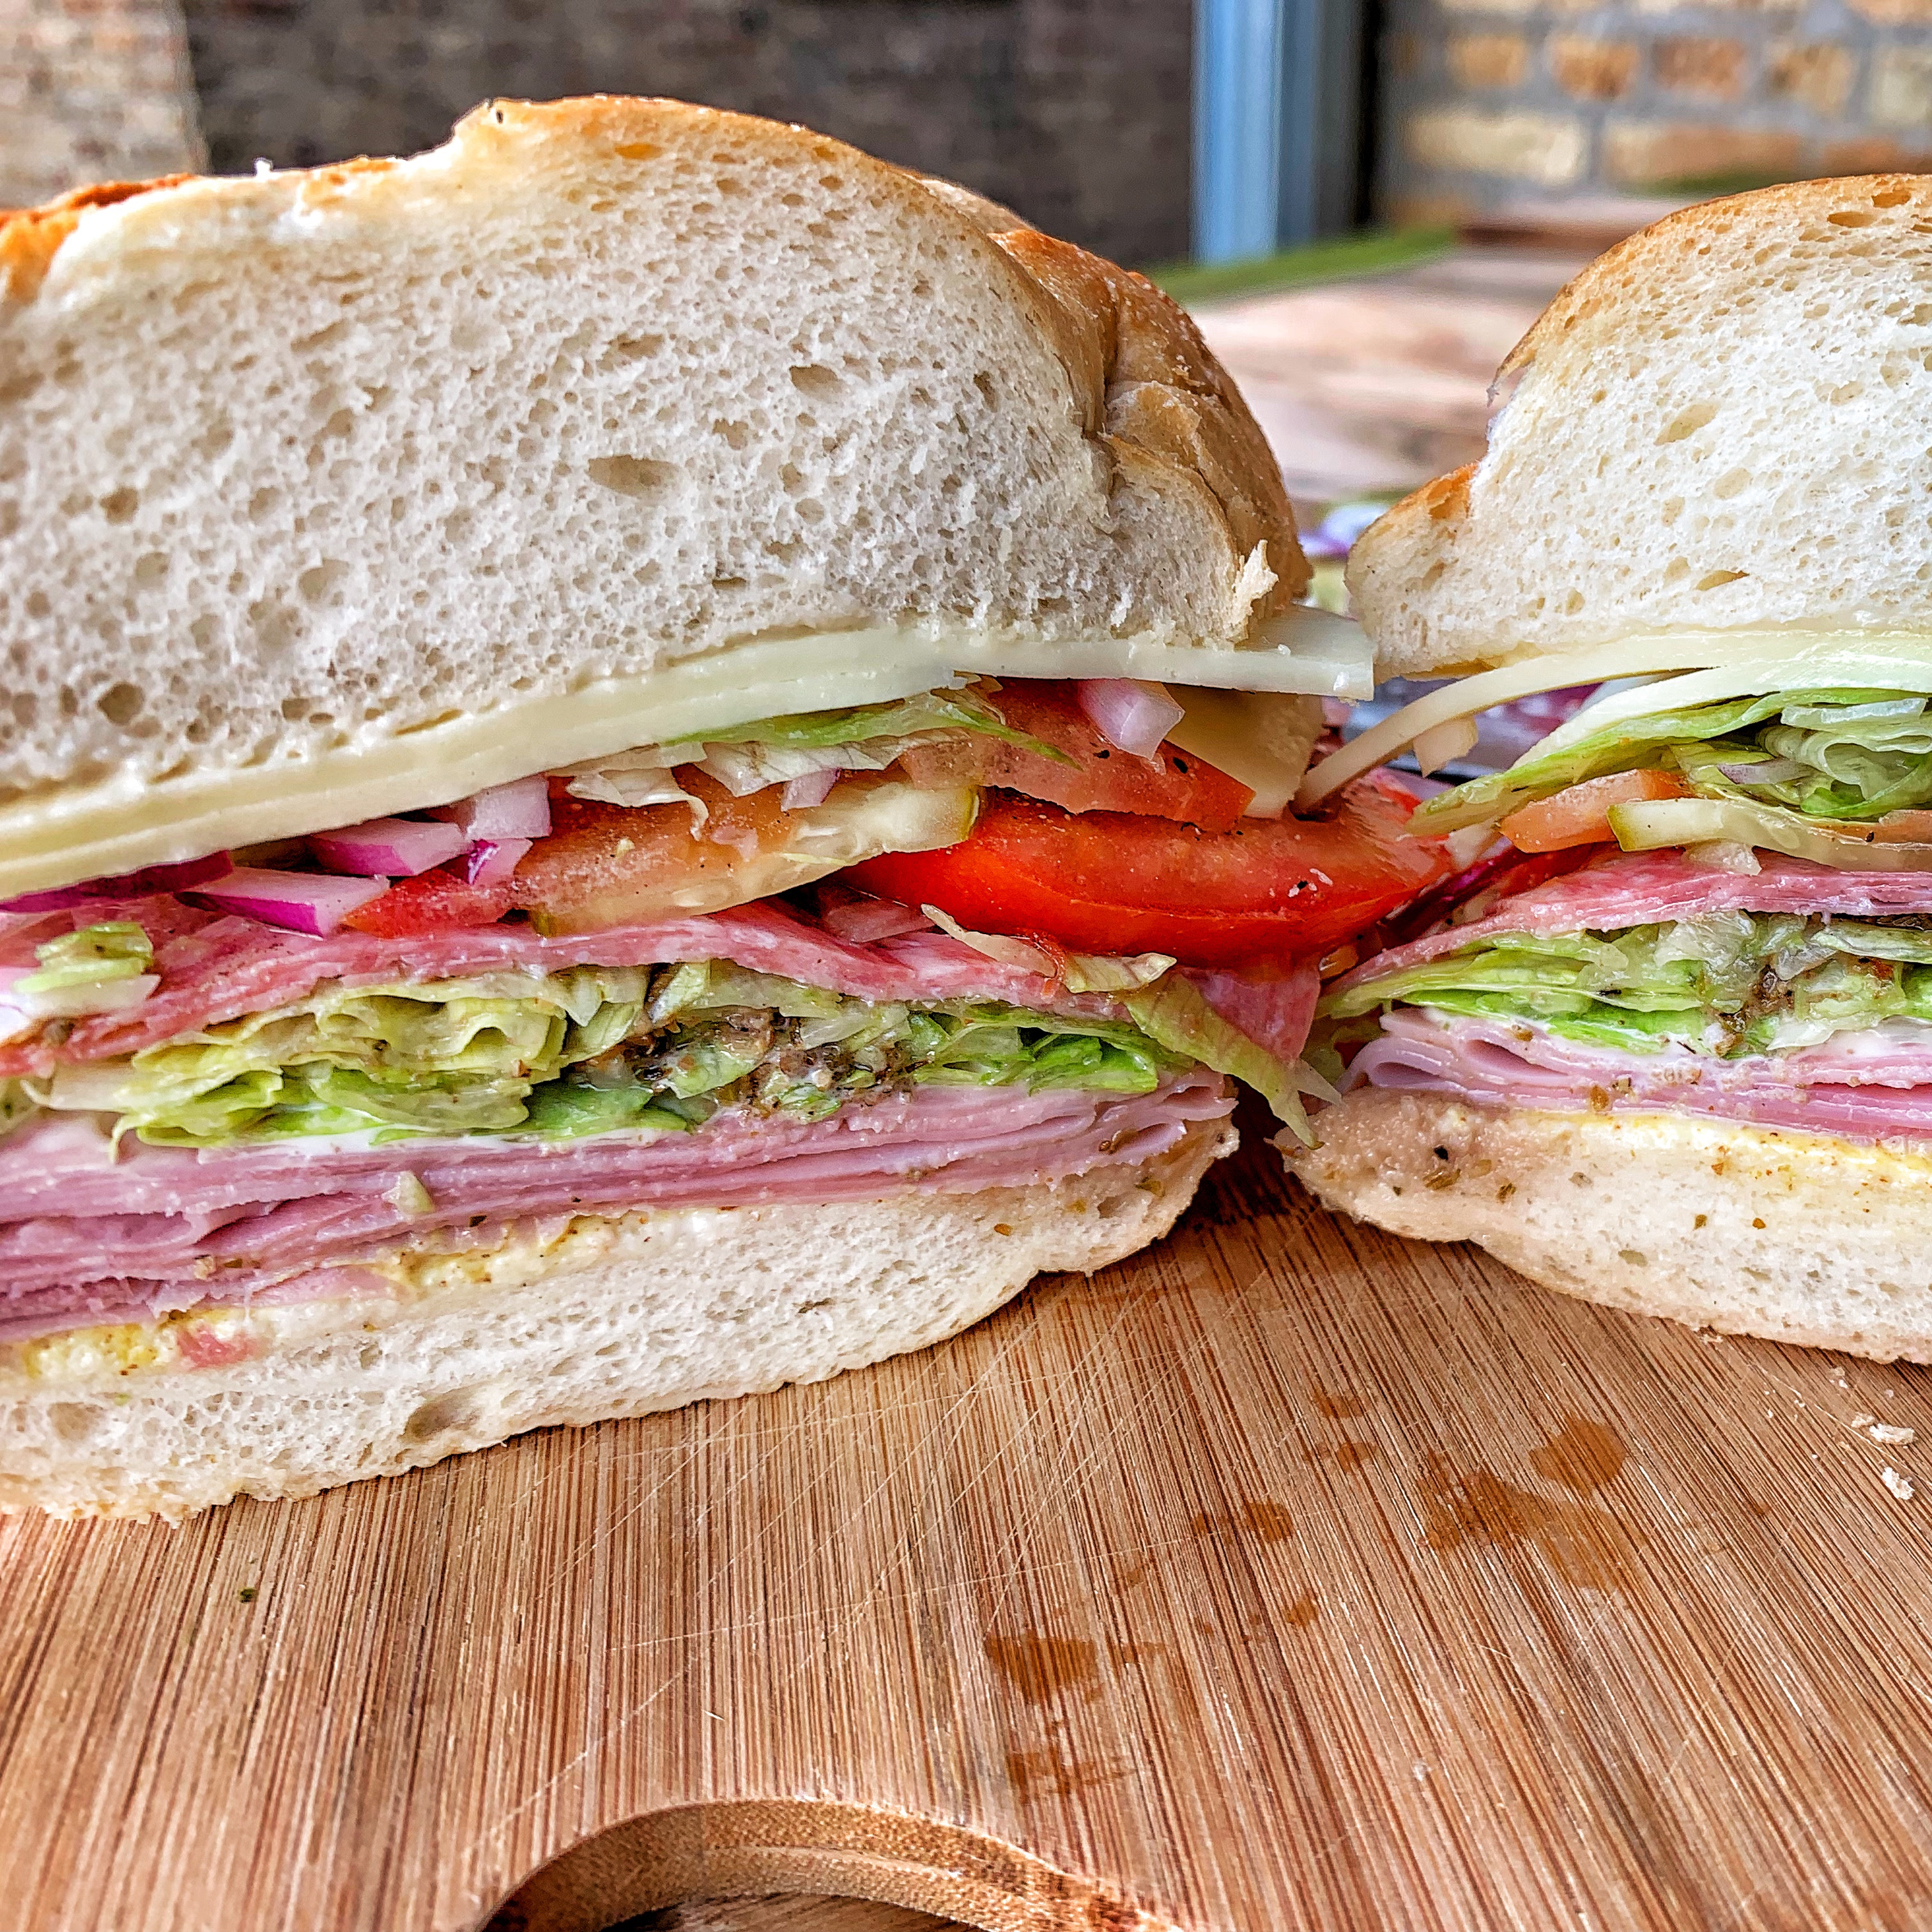 Picture of a sandwich cut in half showing all the layers of deli meat, cheese and veggies.